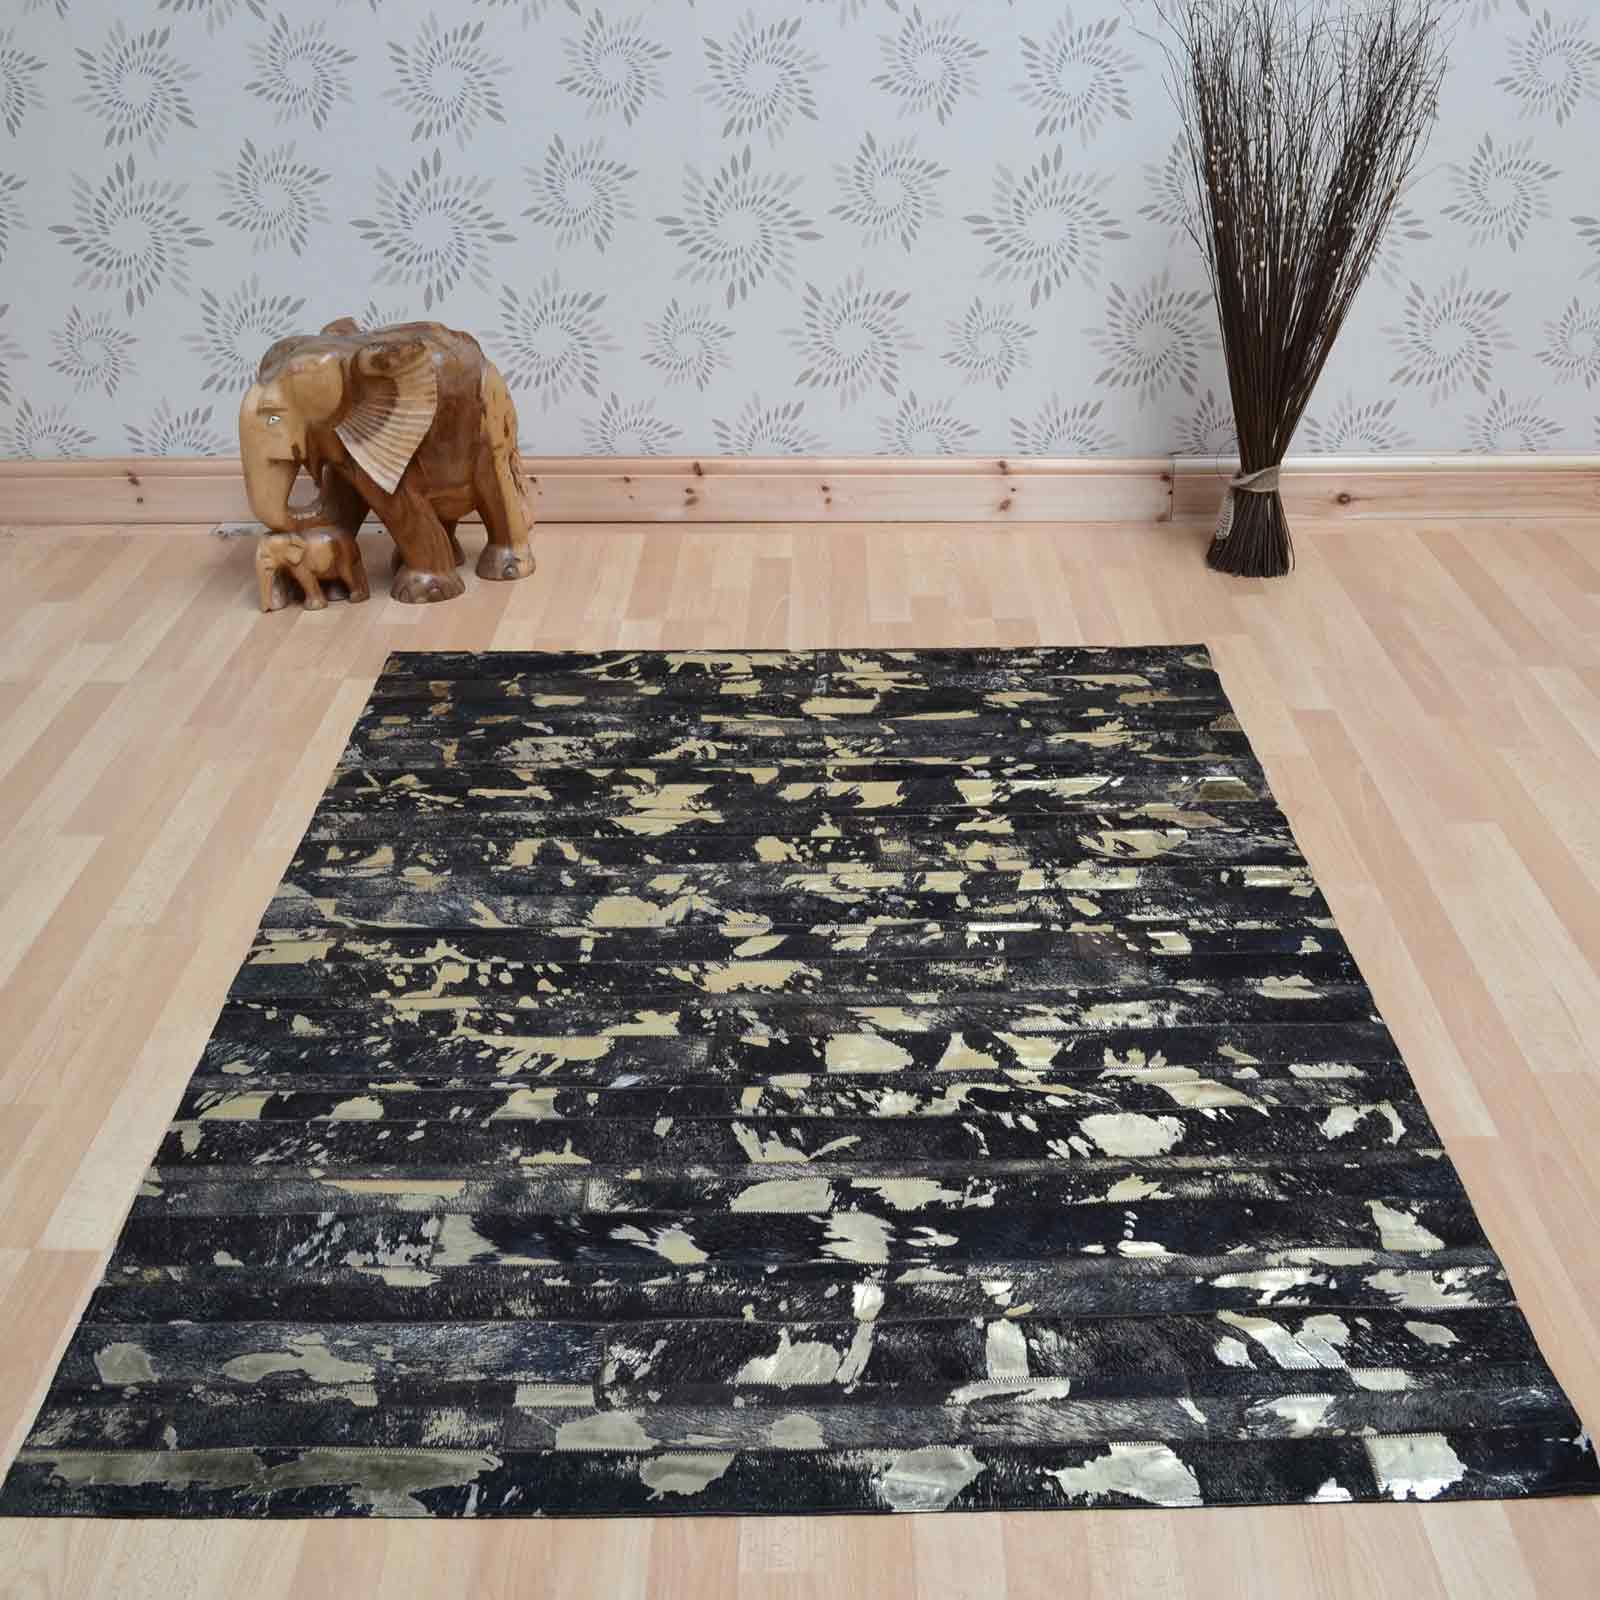 Rodeo Metallic Leather Rugs in Gold